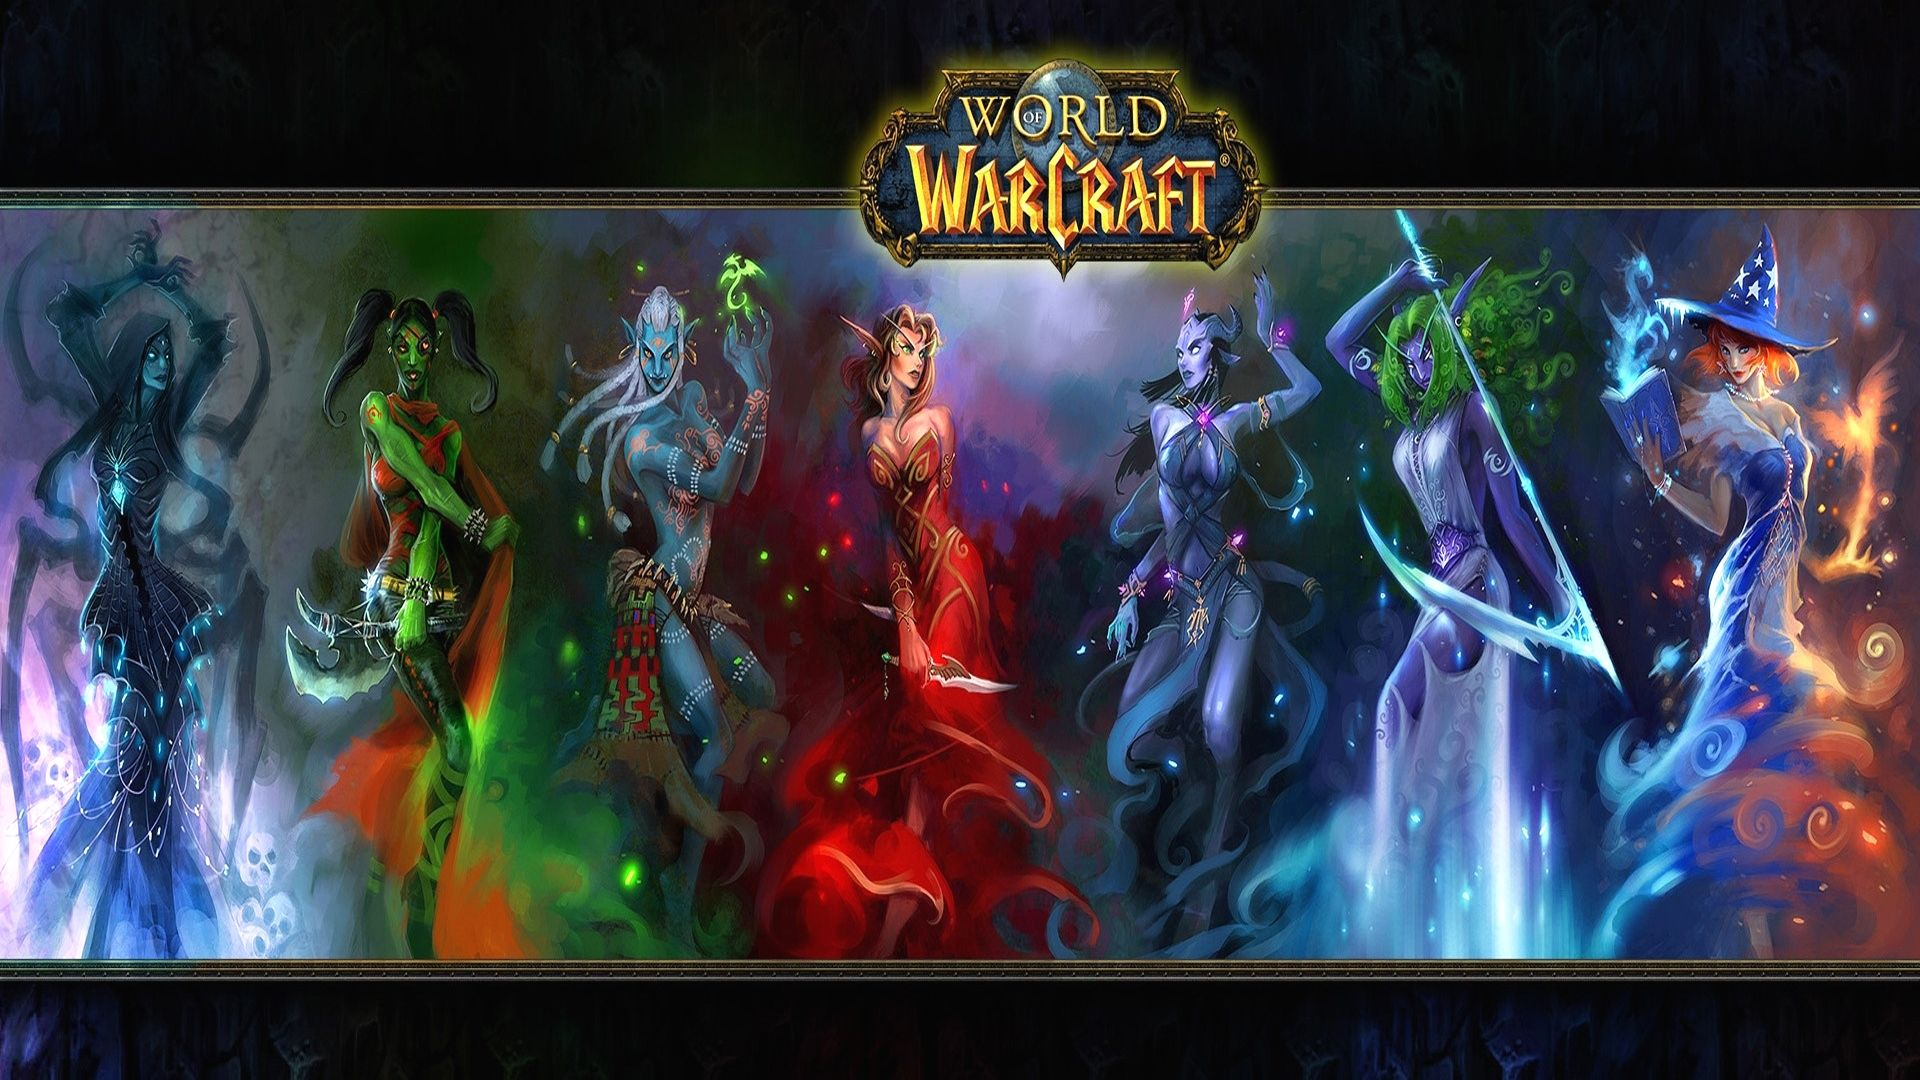 Buy Safe Wow Gold At Mmogah Fast Delivery With 3 Flexible Methods Almost All Payment Methods Are Available Easy Purchase For World Of W Oboi Kartinki Filmy